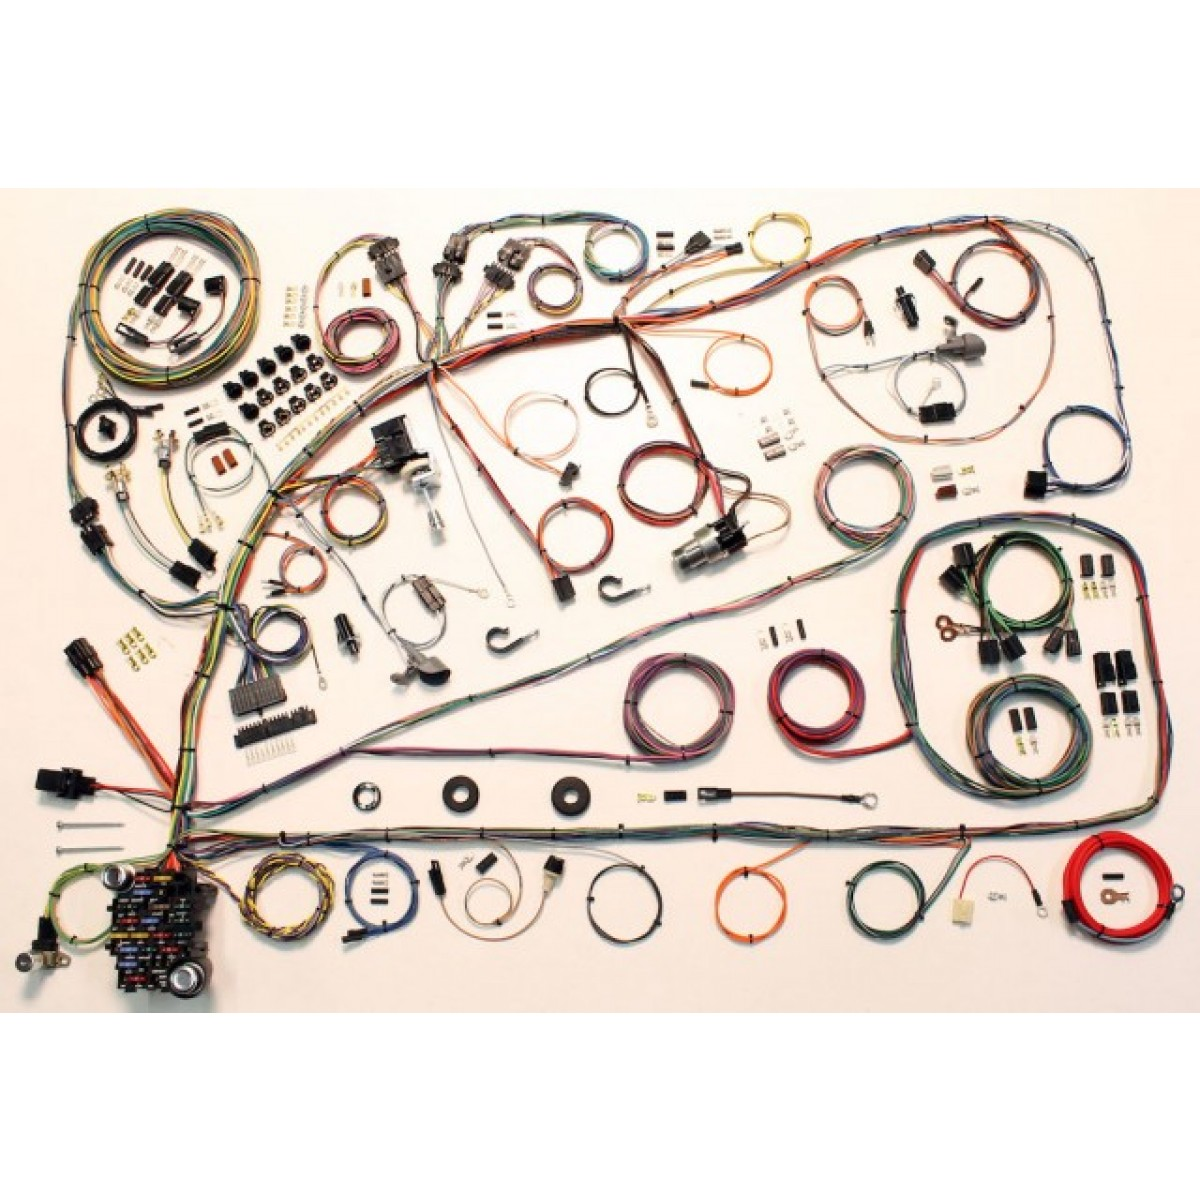 Ford Fairlane Wiring Harness Kit 1966 1967 Part Complete 510391